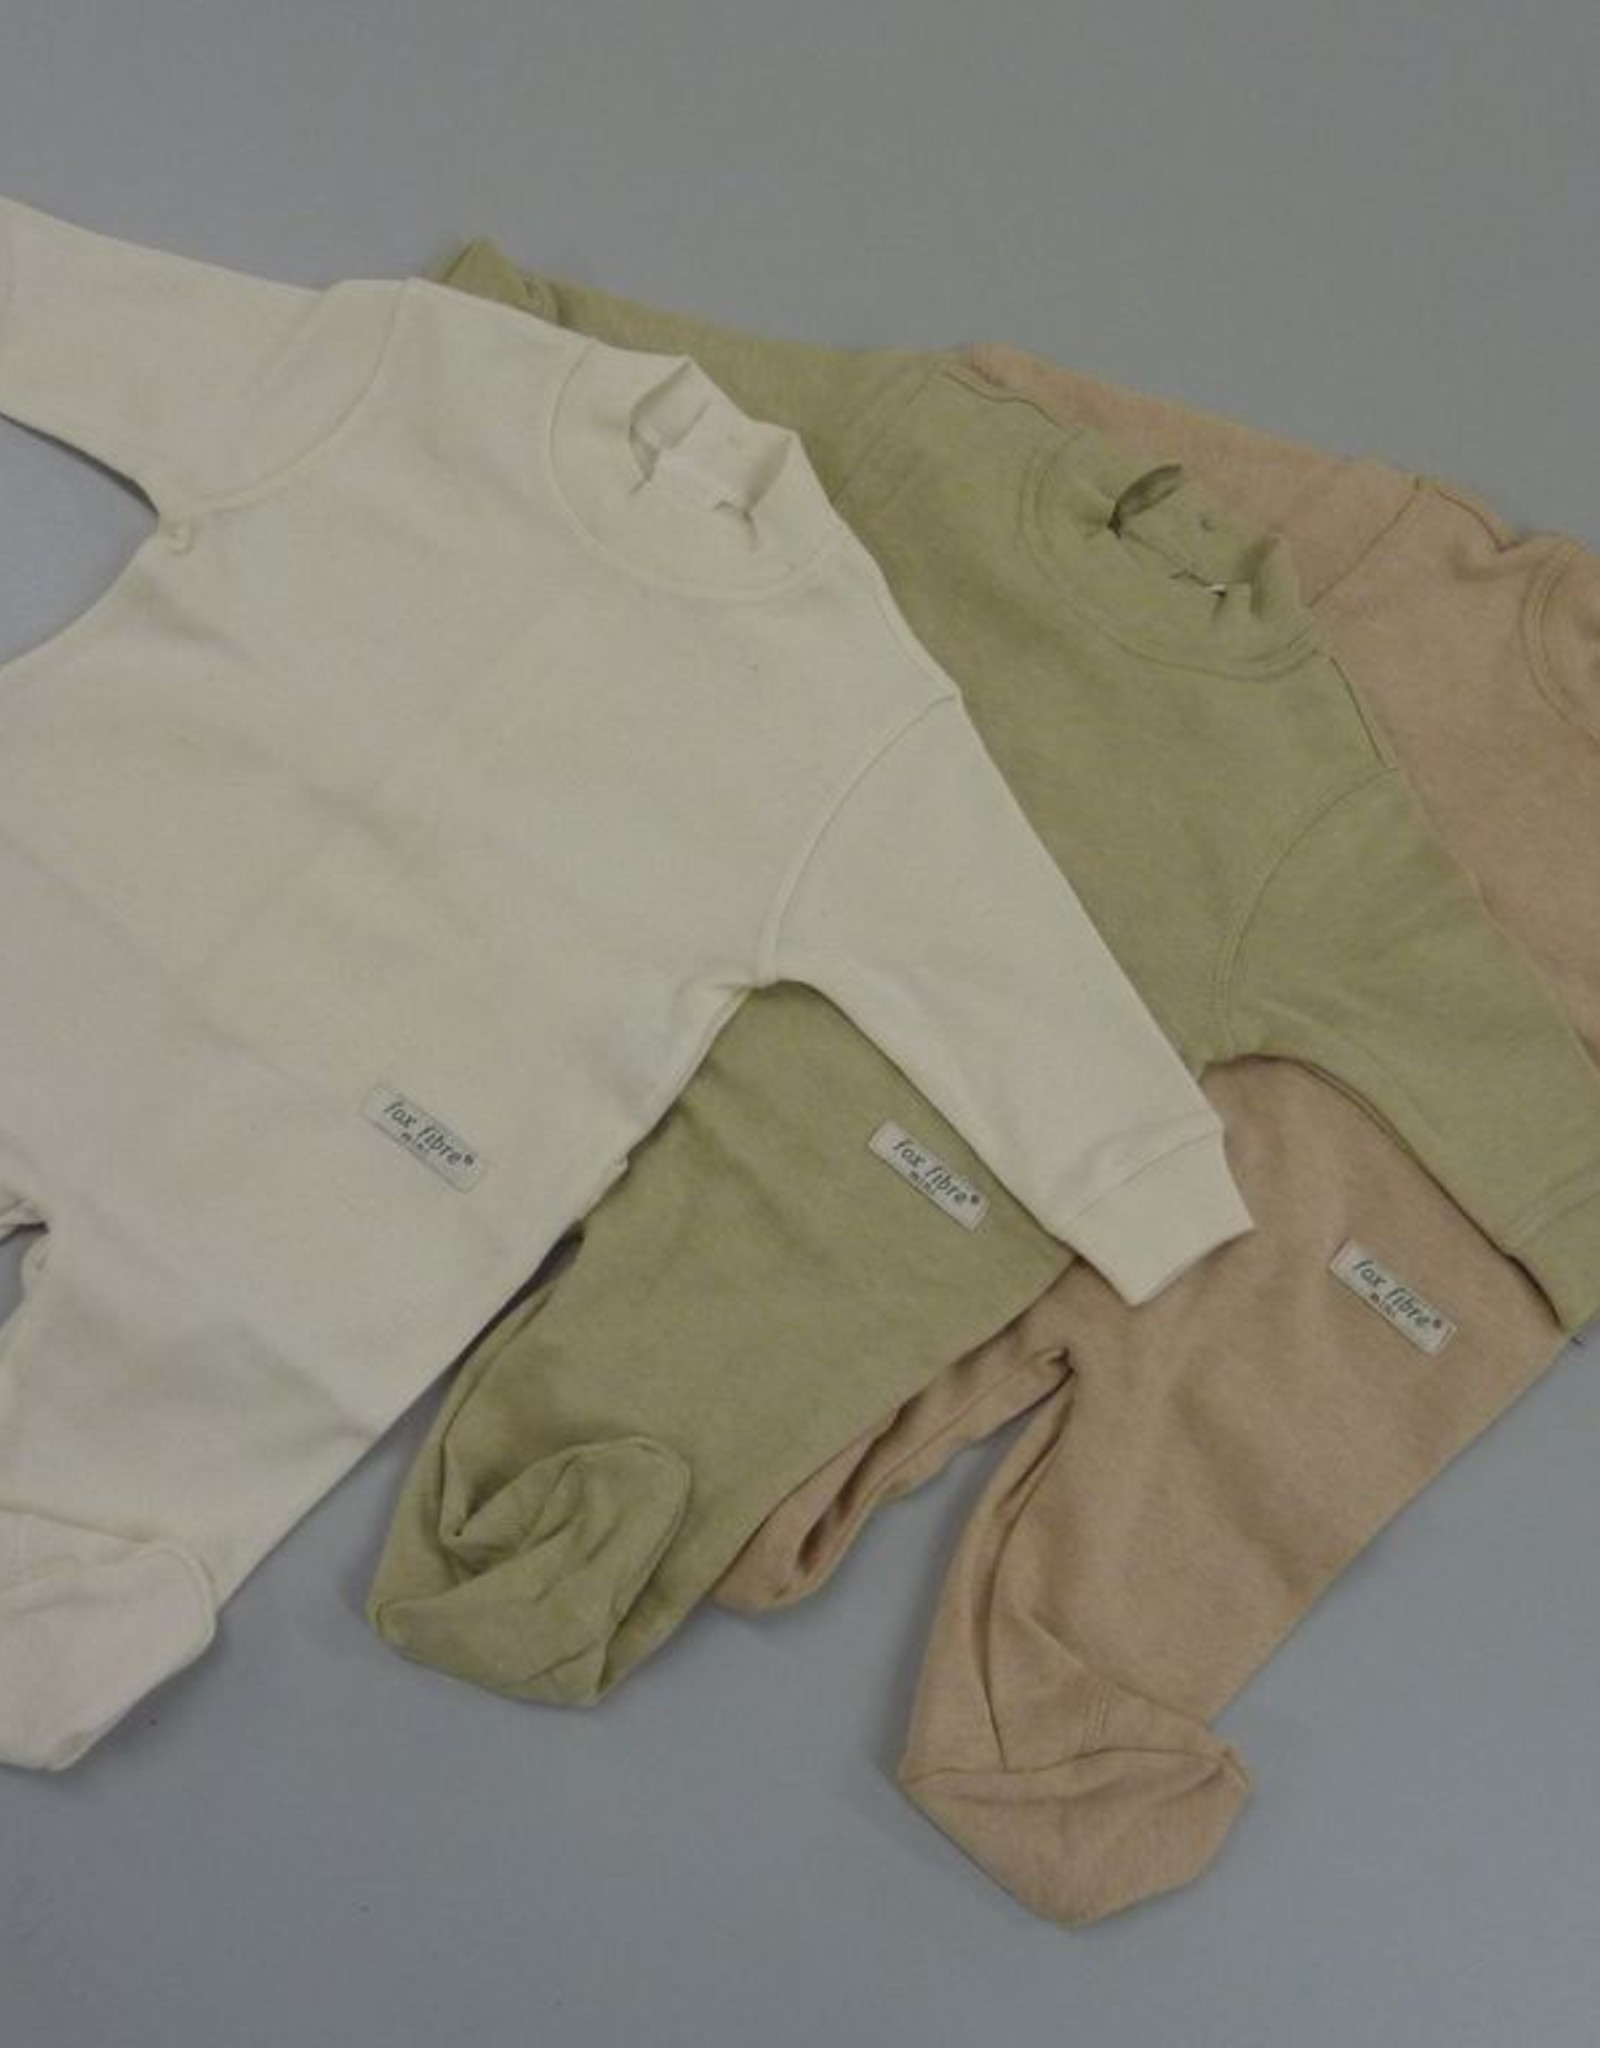 Long sleeve pajamas for baby. Sizes 12, 18, 24 months.